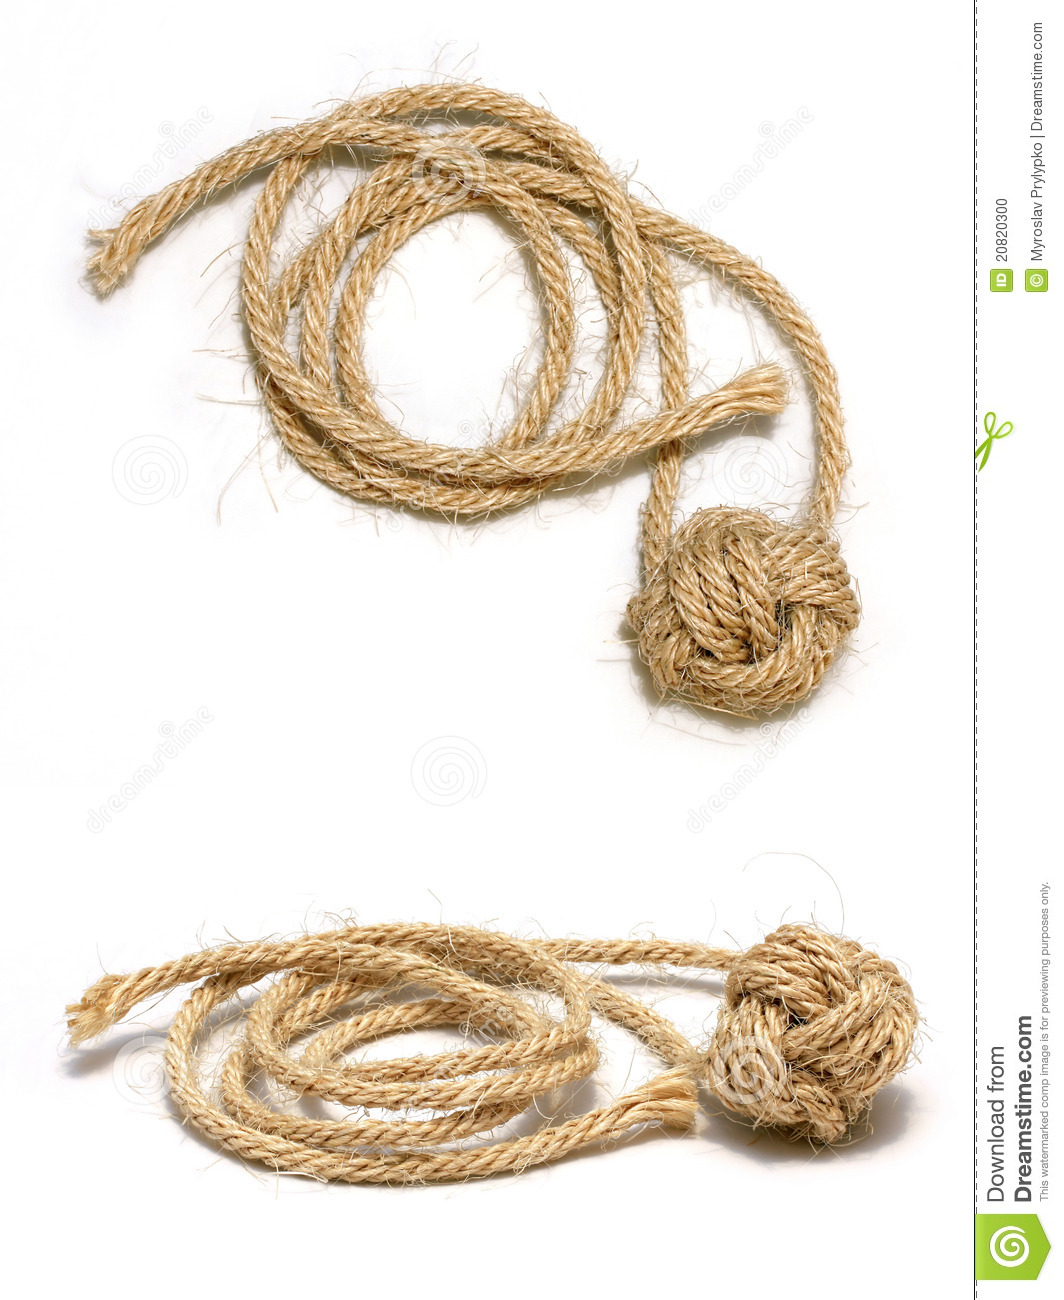 Remarkable, monkey fist on a rope really. All